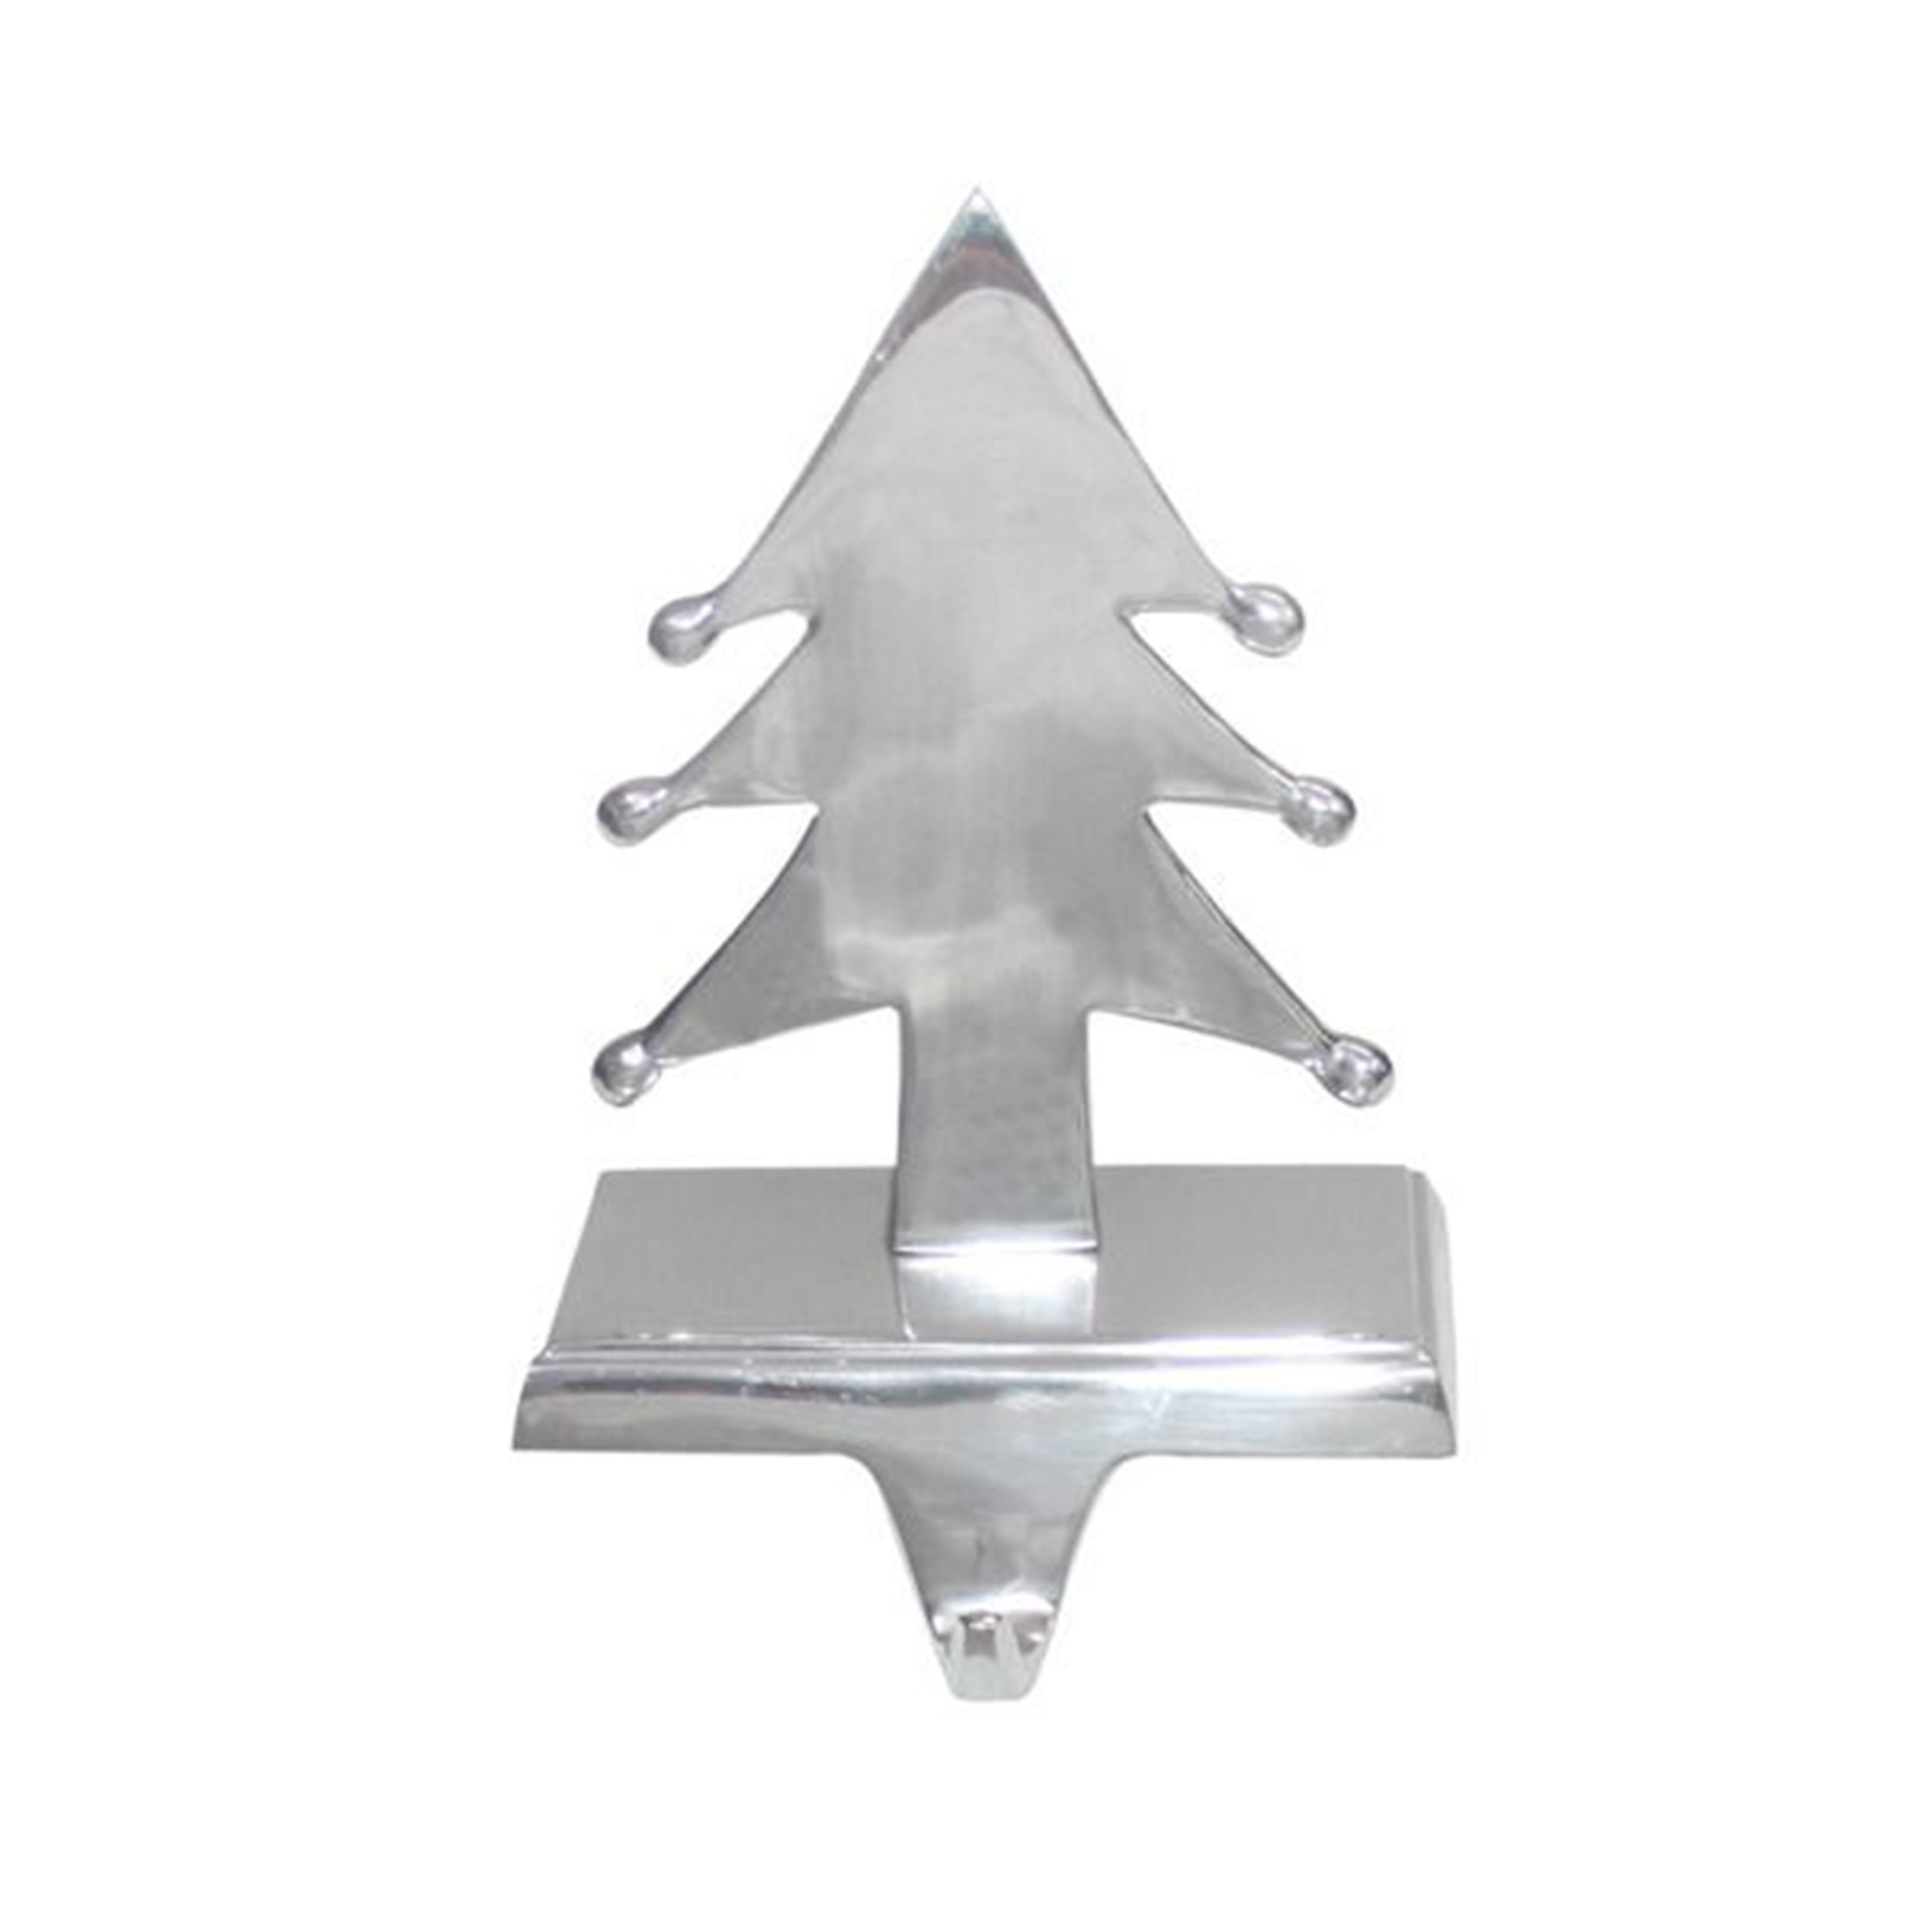 Insideretail Christmas Tree Stocking Holder (Set of 2), Silver